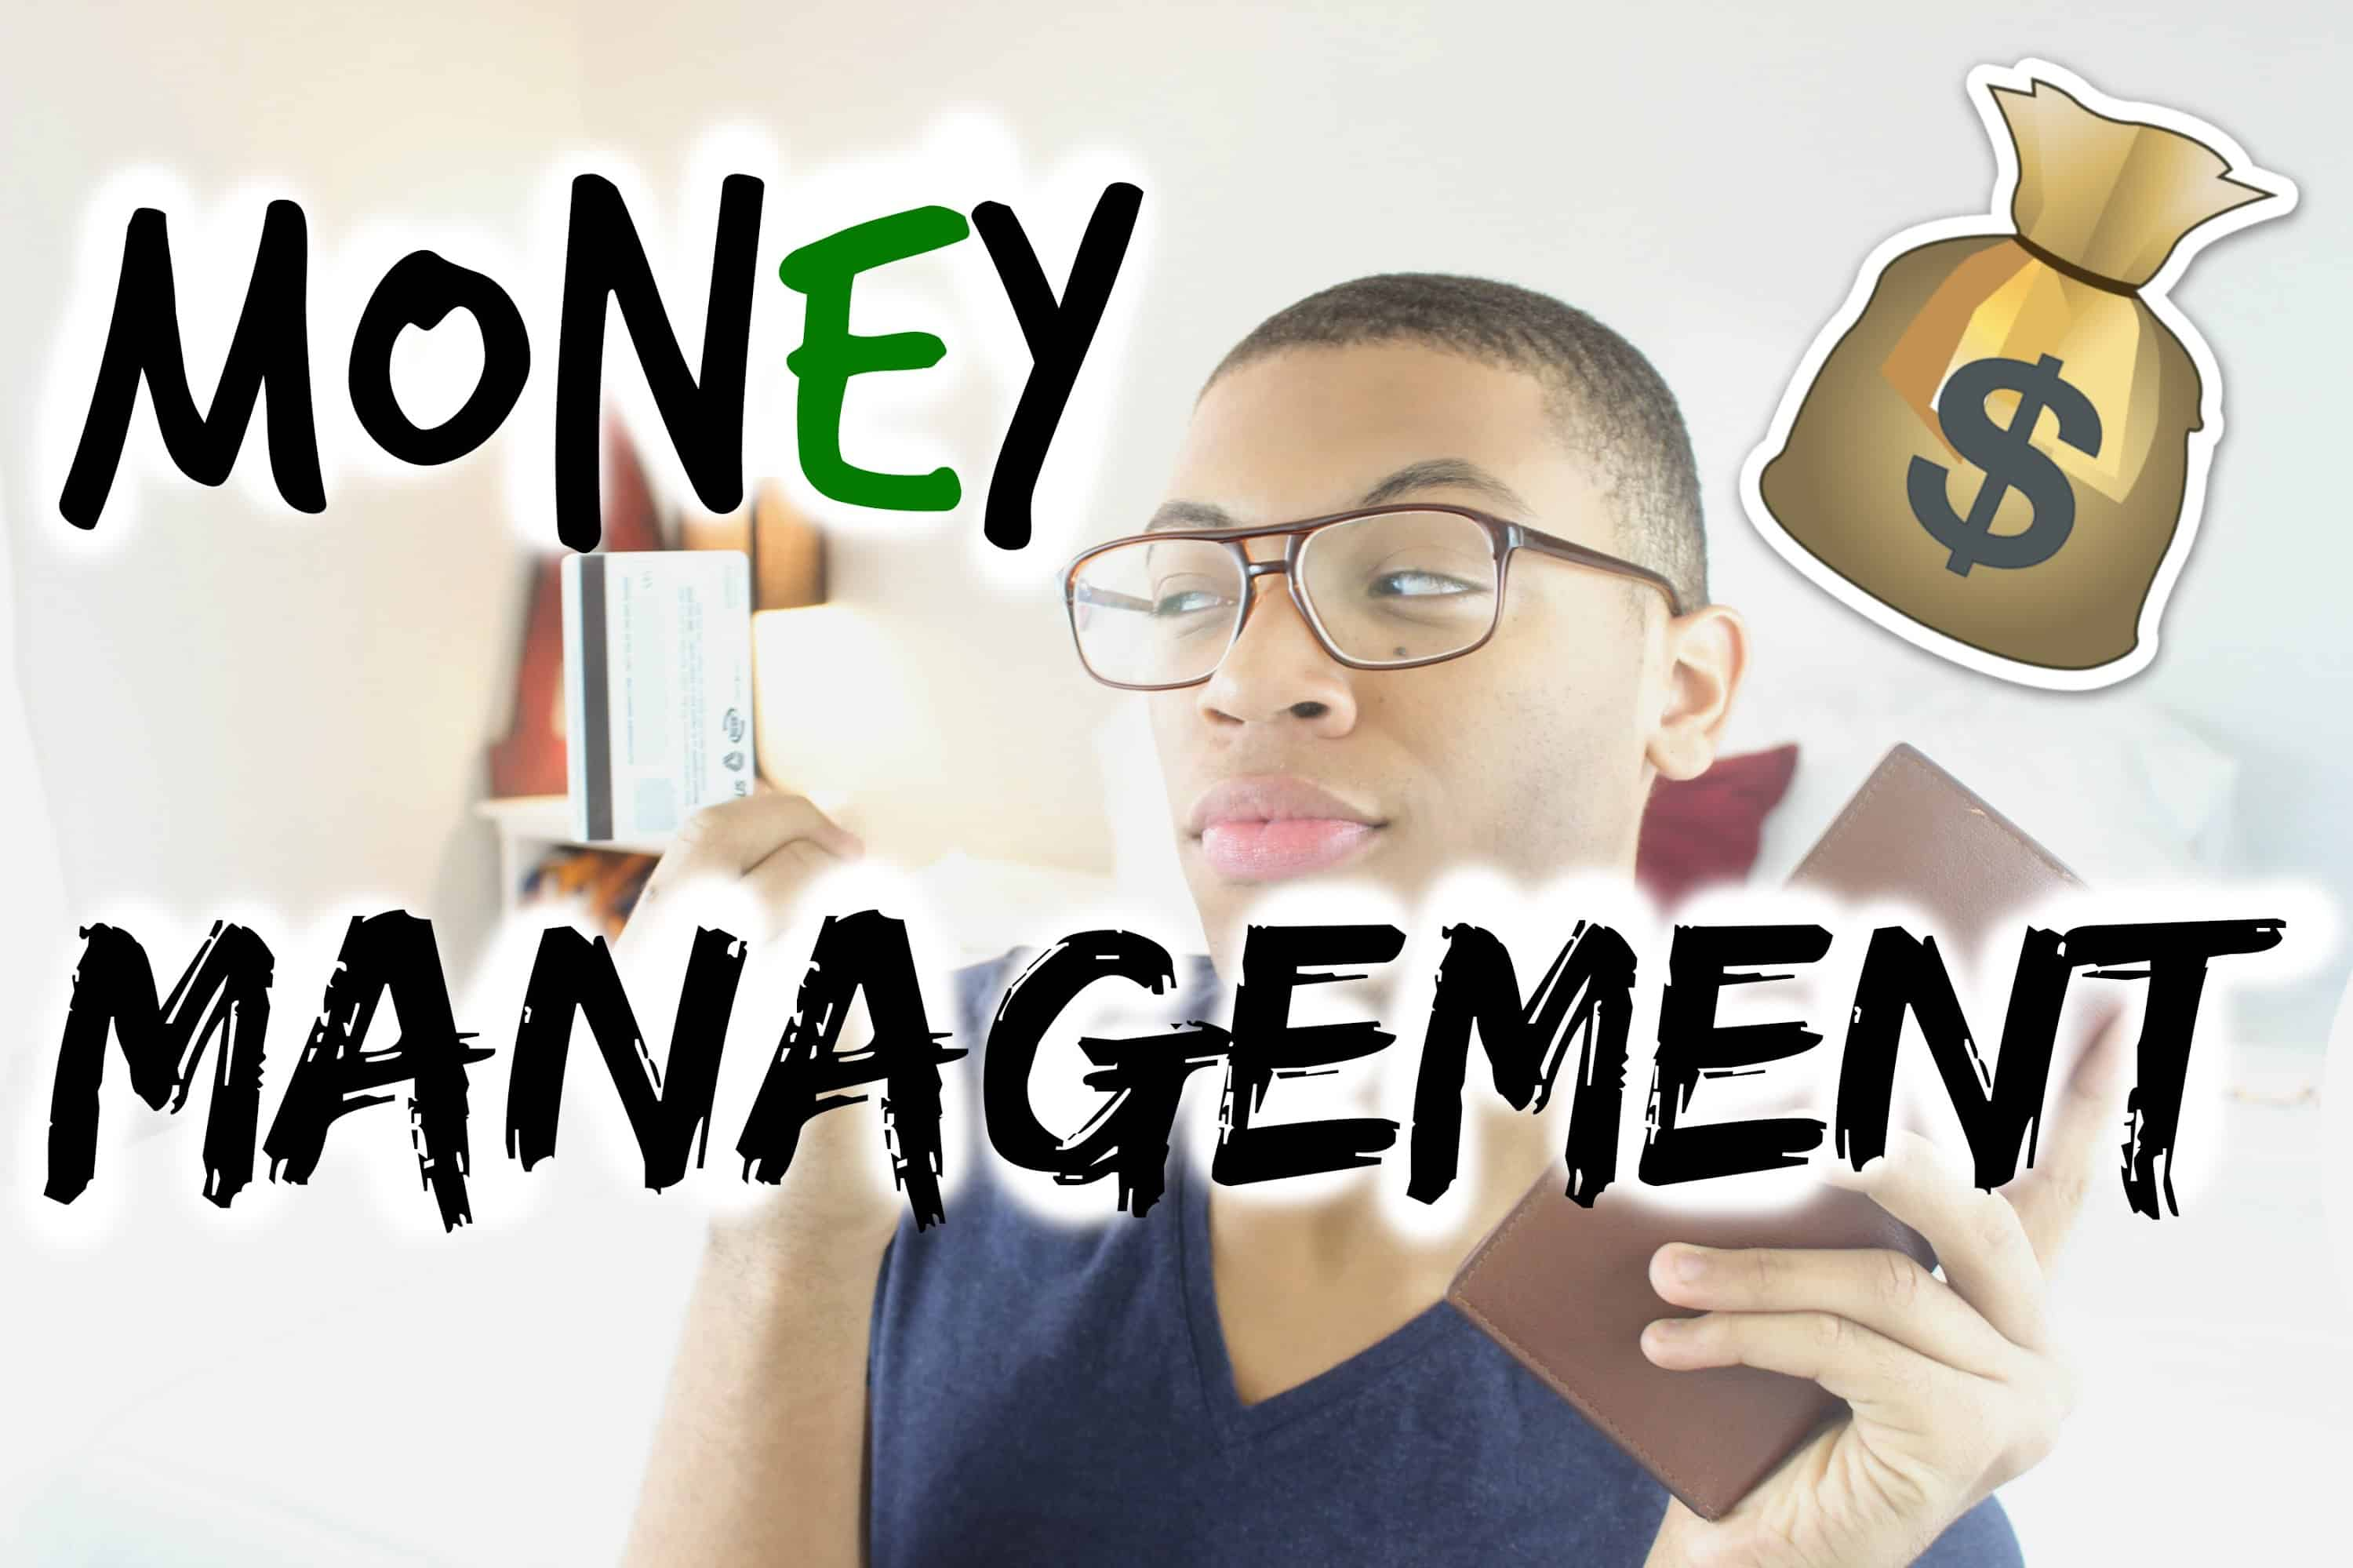 casino money management